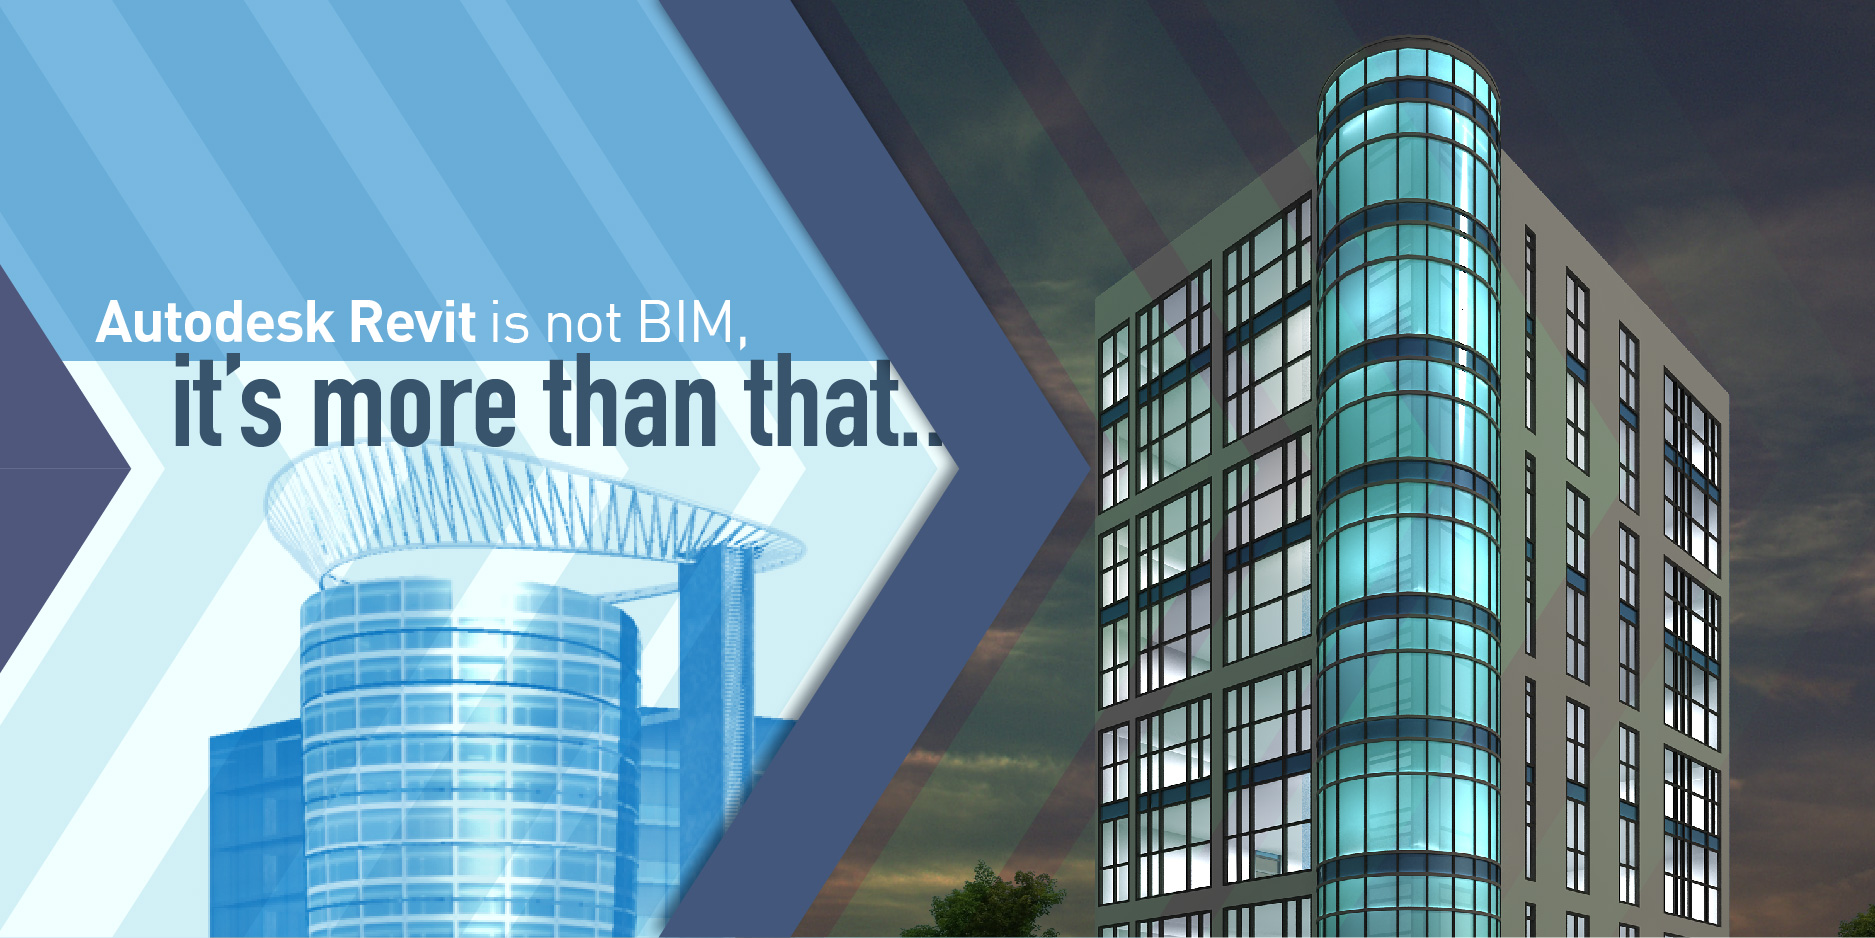 Autodesk Revit is not BIM, it's more than that | BIMCommunity